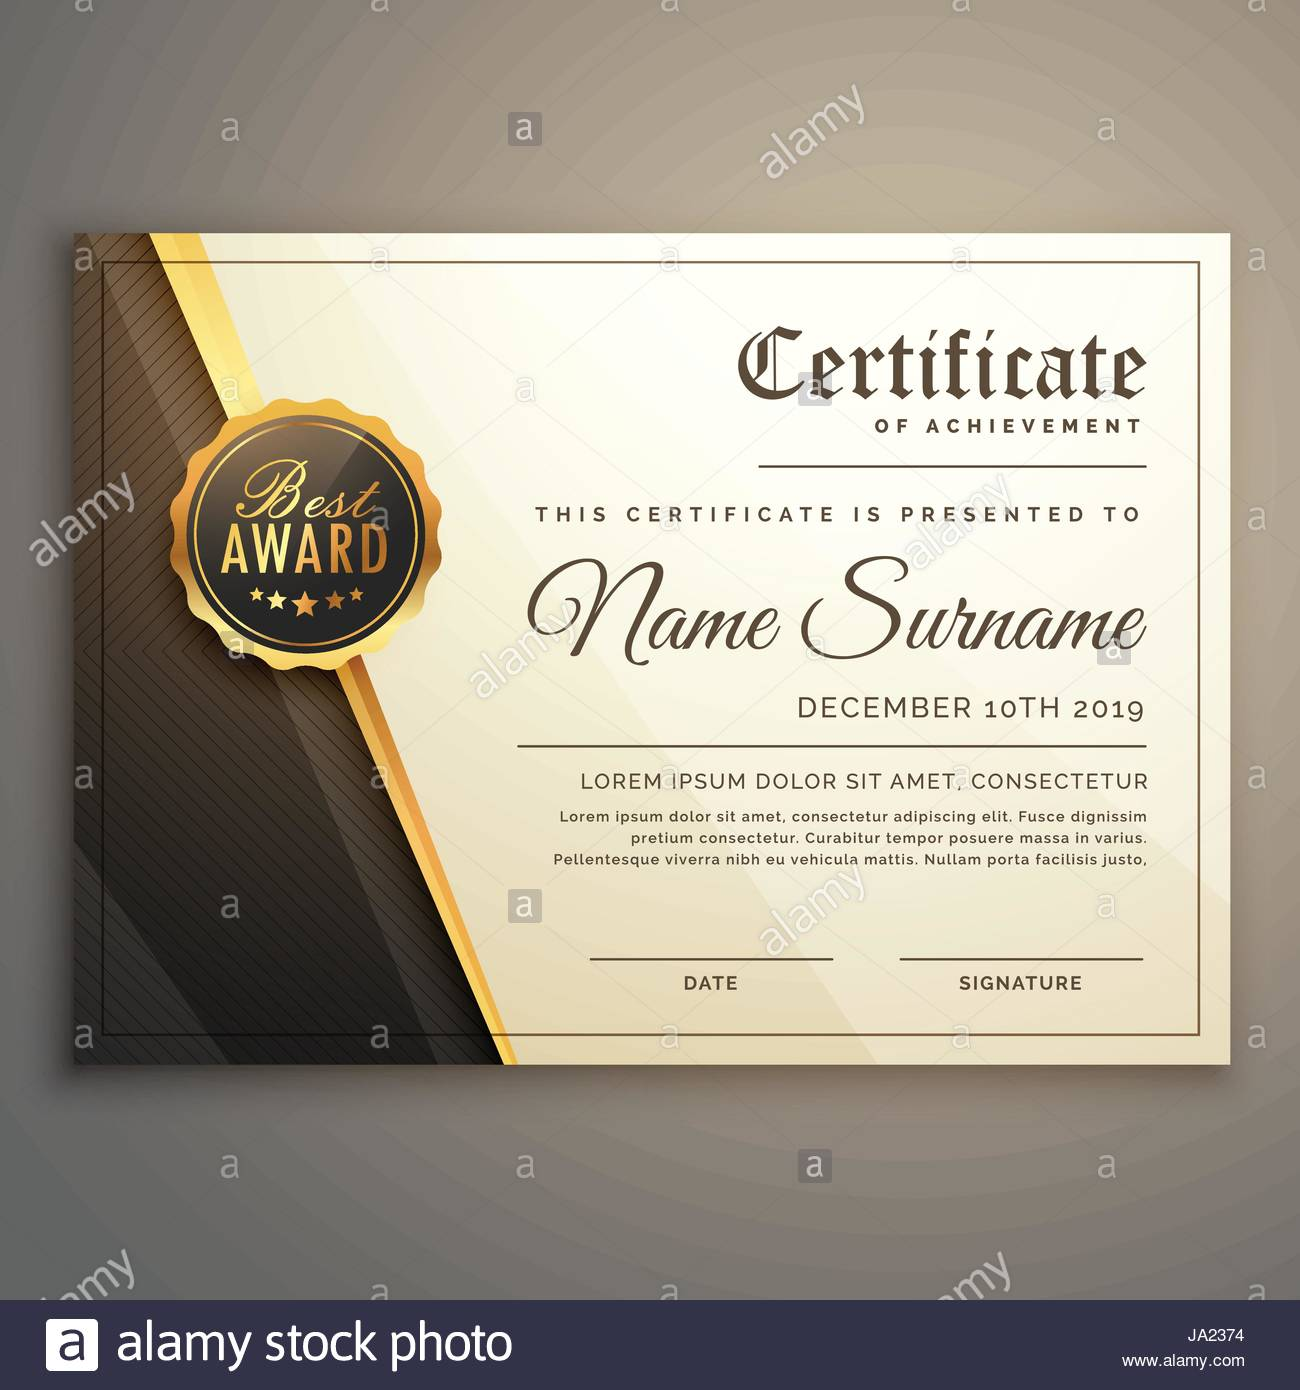 Premium certificate design vector template stock vector art premium certificate design vector template yelopaper Choice Image